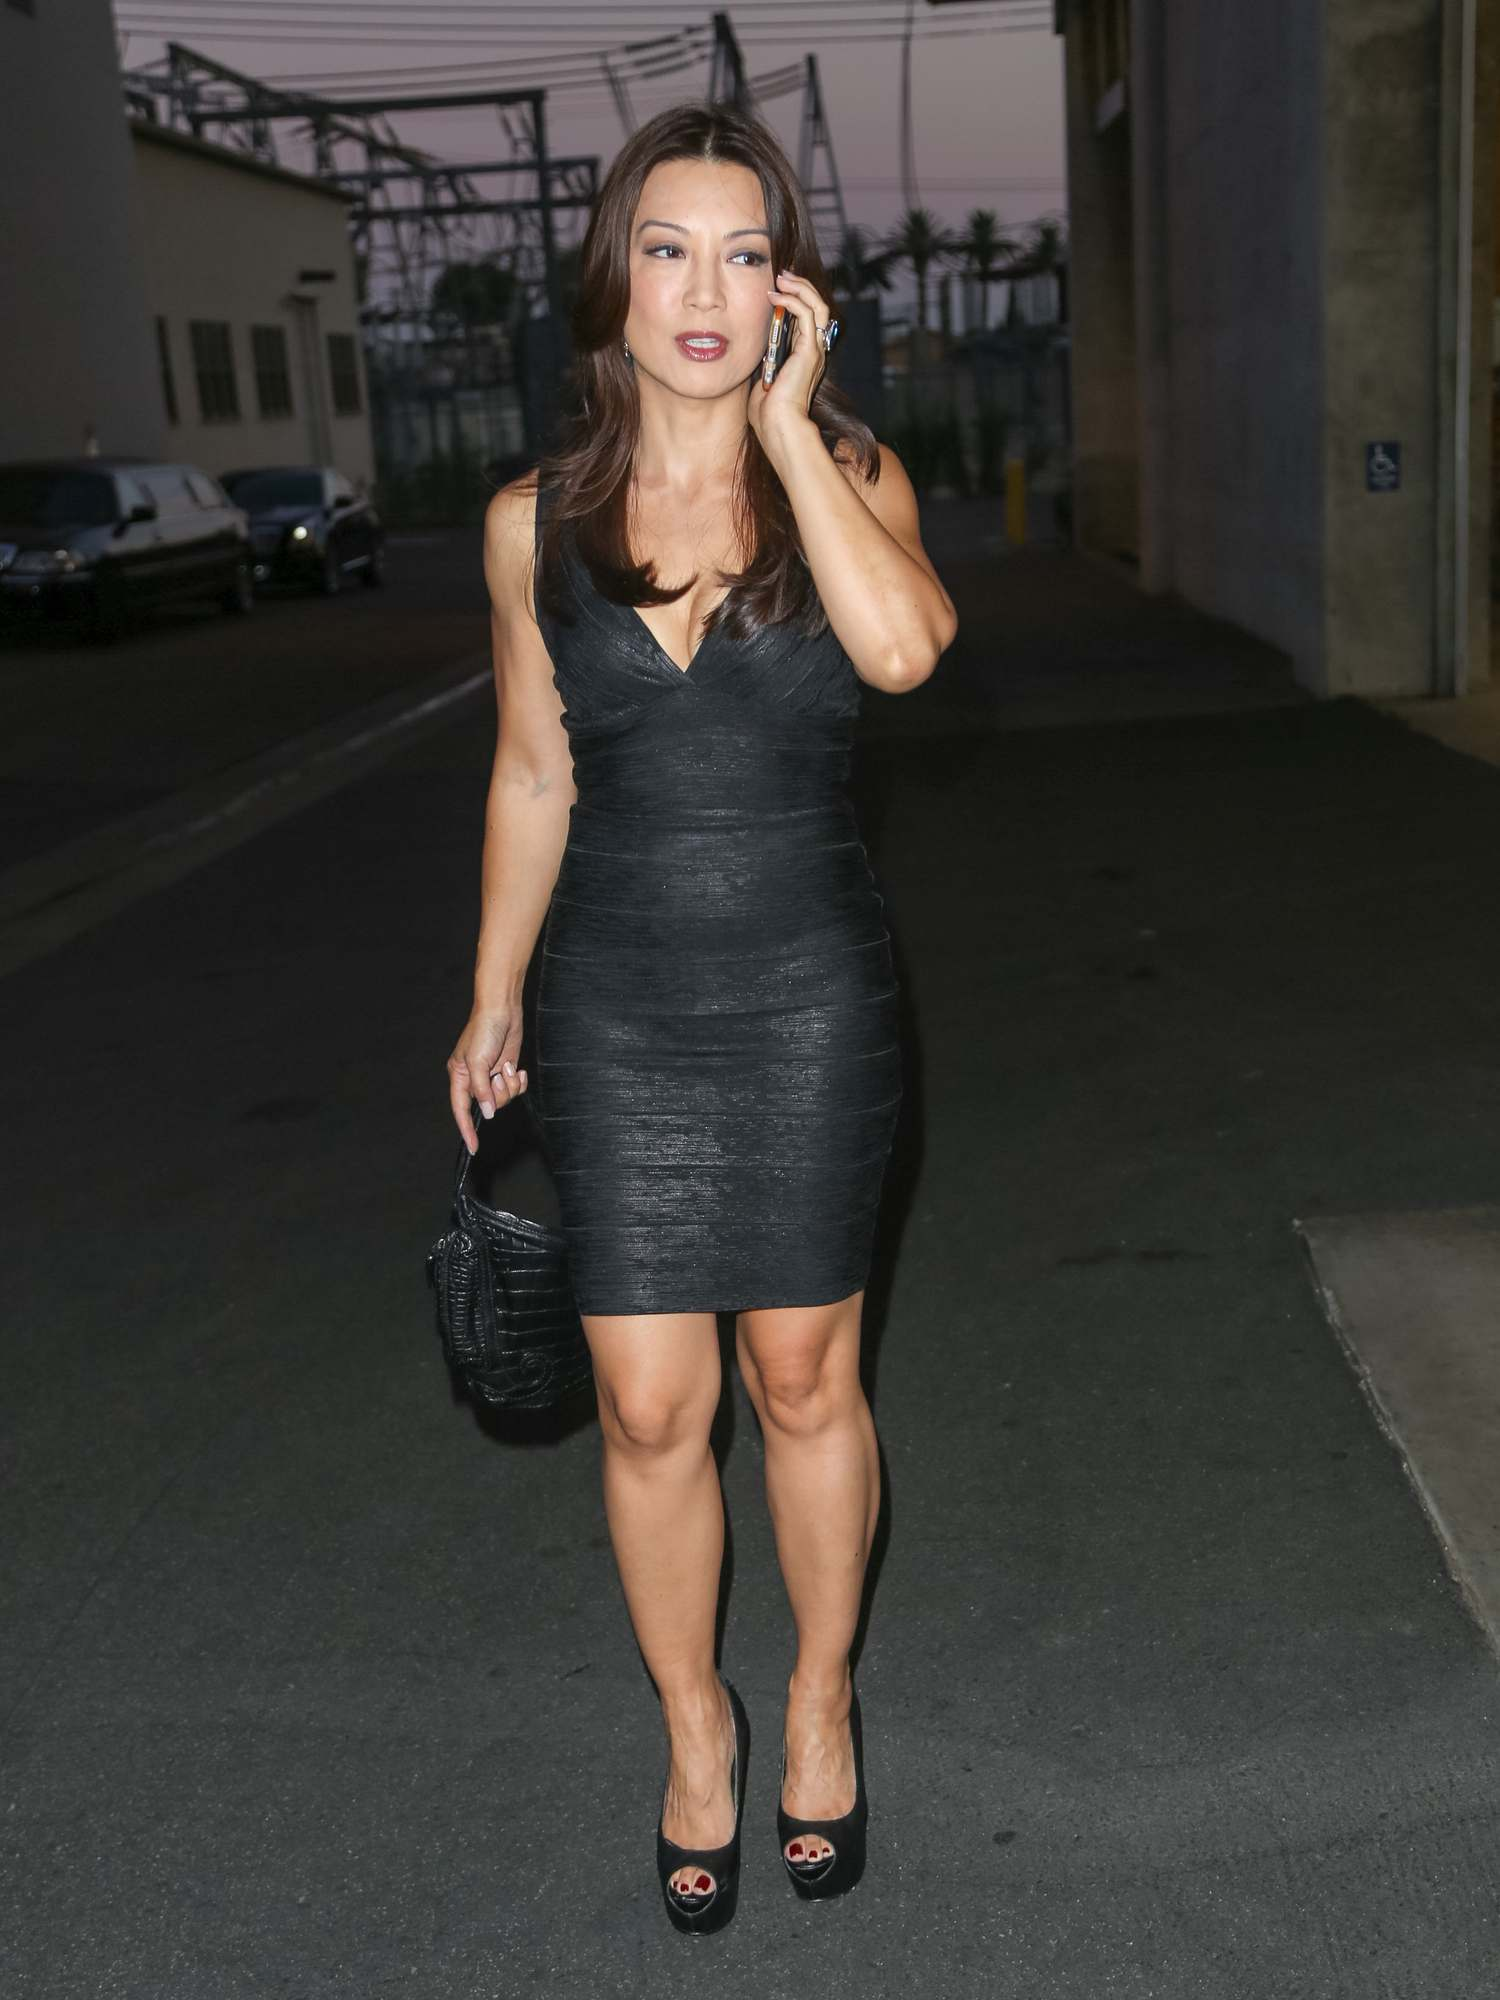 Ming-Na Wen Looks Pretty As She Walks Up To The Lot Studio-3